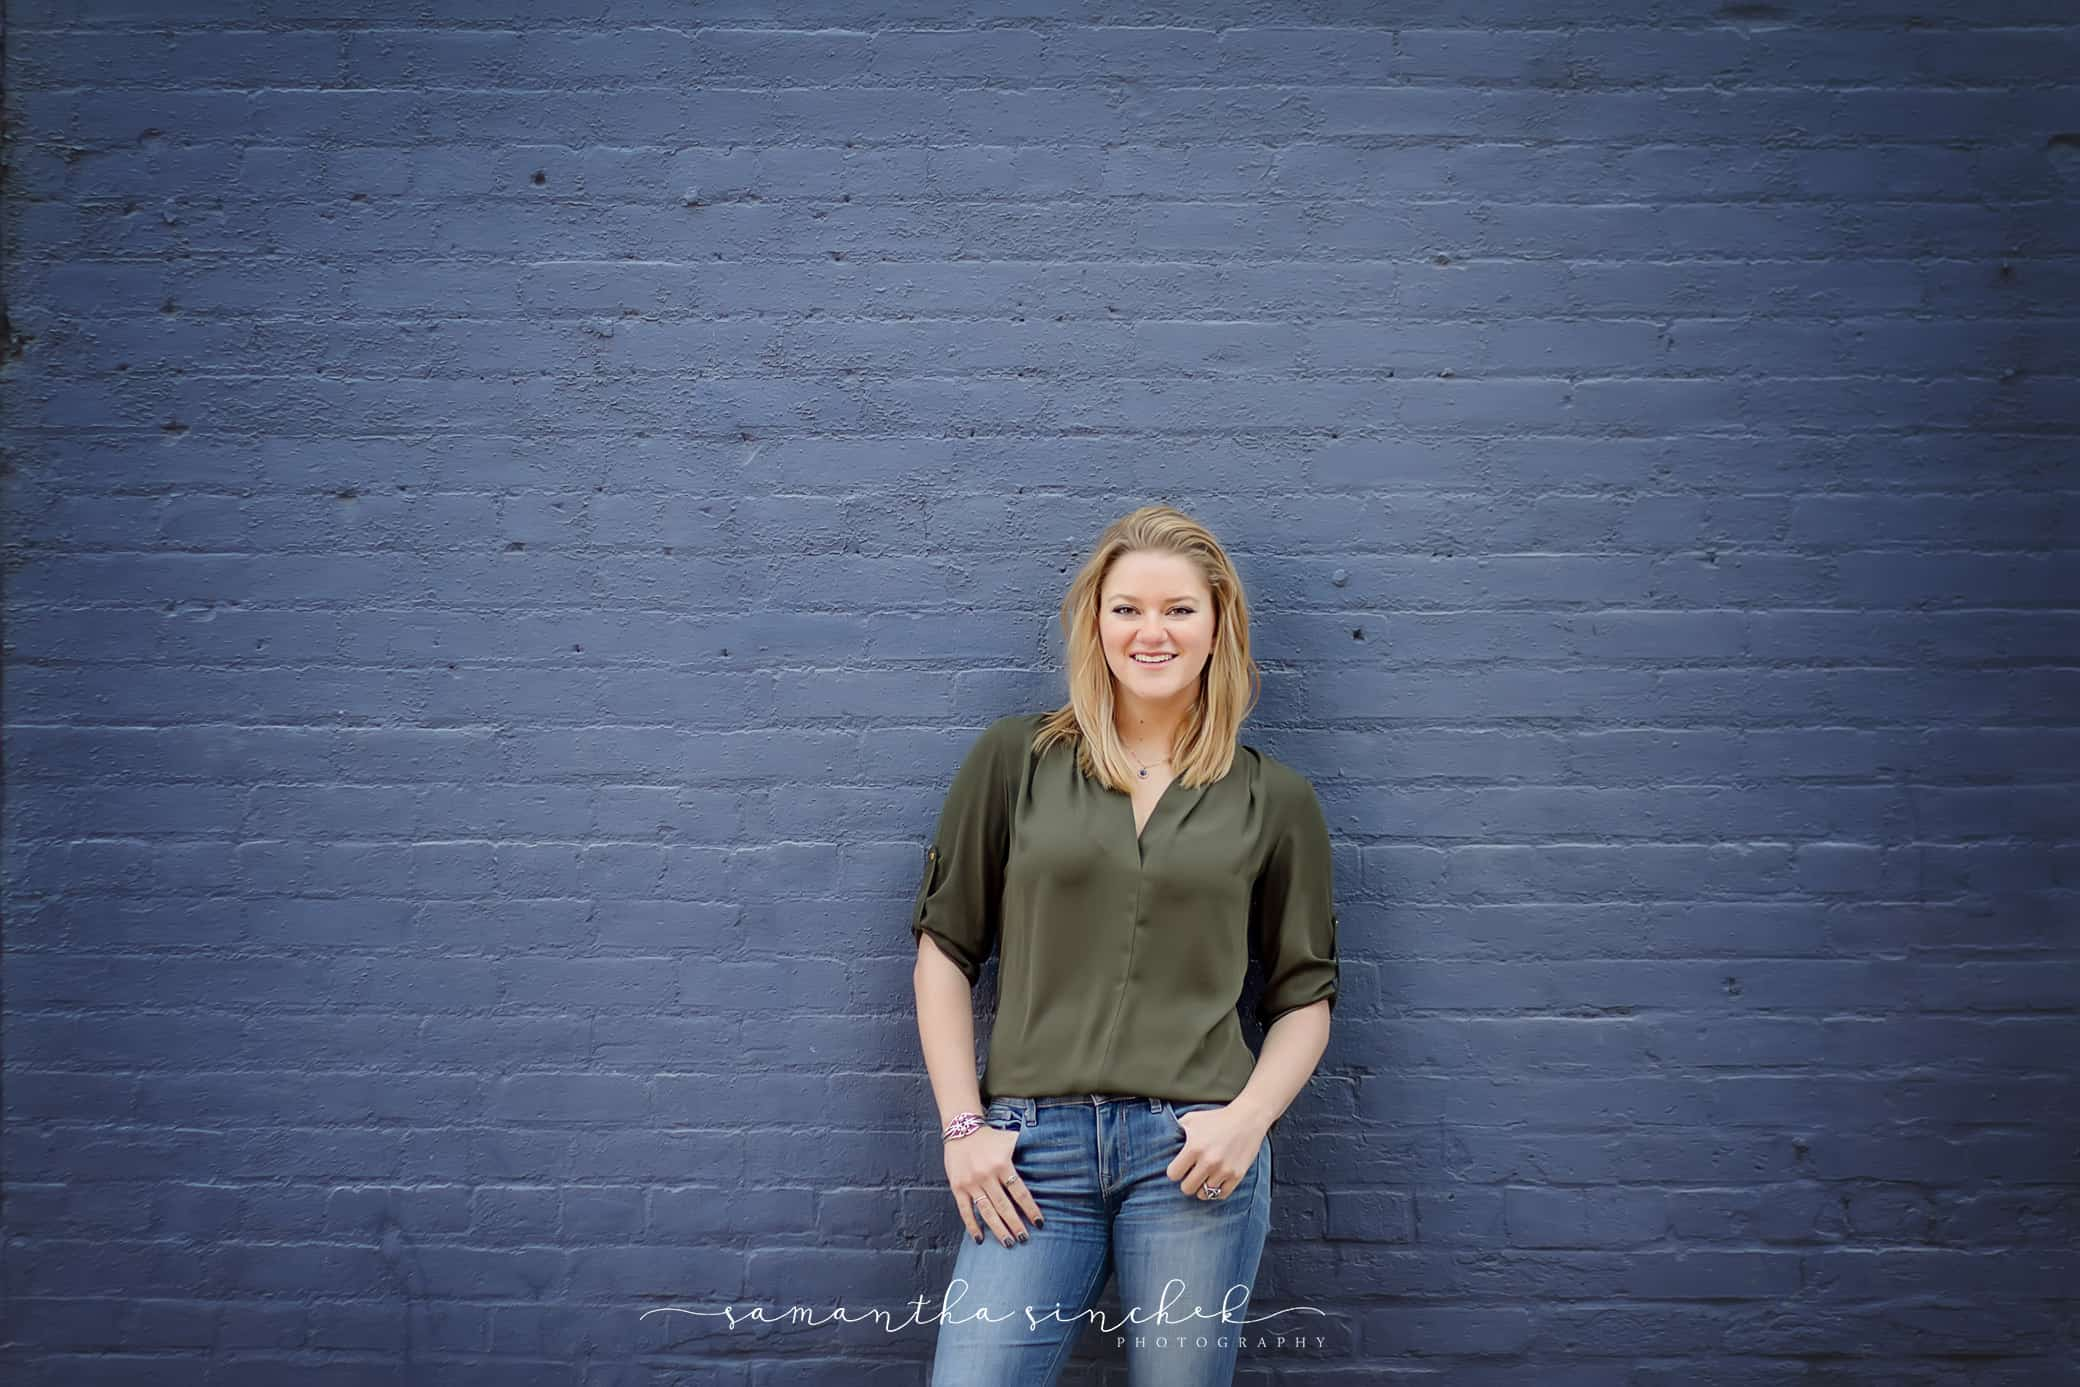 With fingers in her pockets a William mason high school senior stands against a blue brick wall